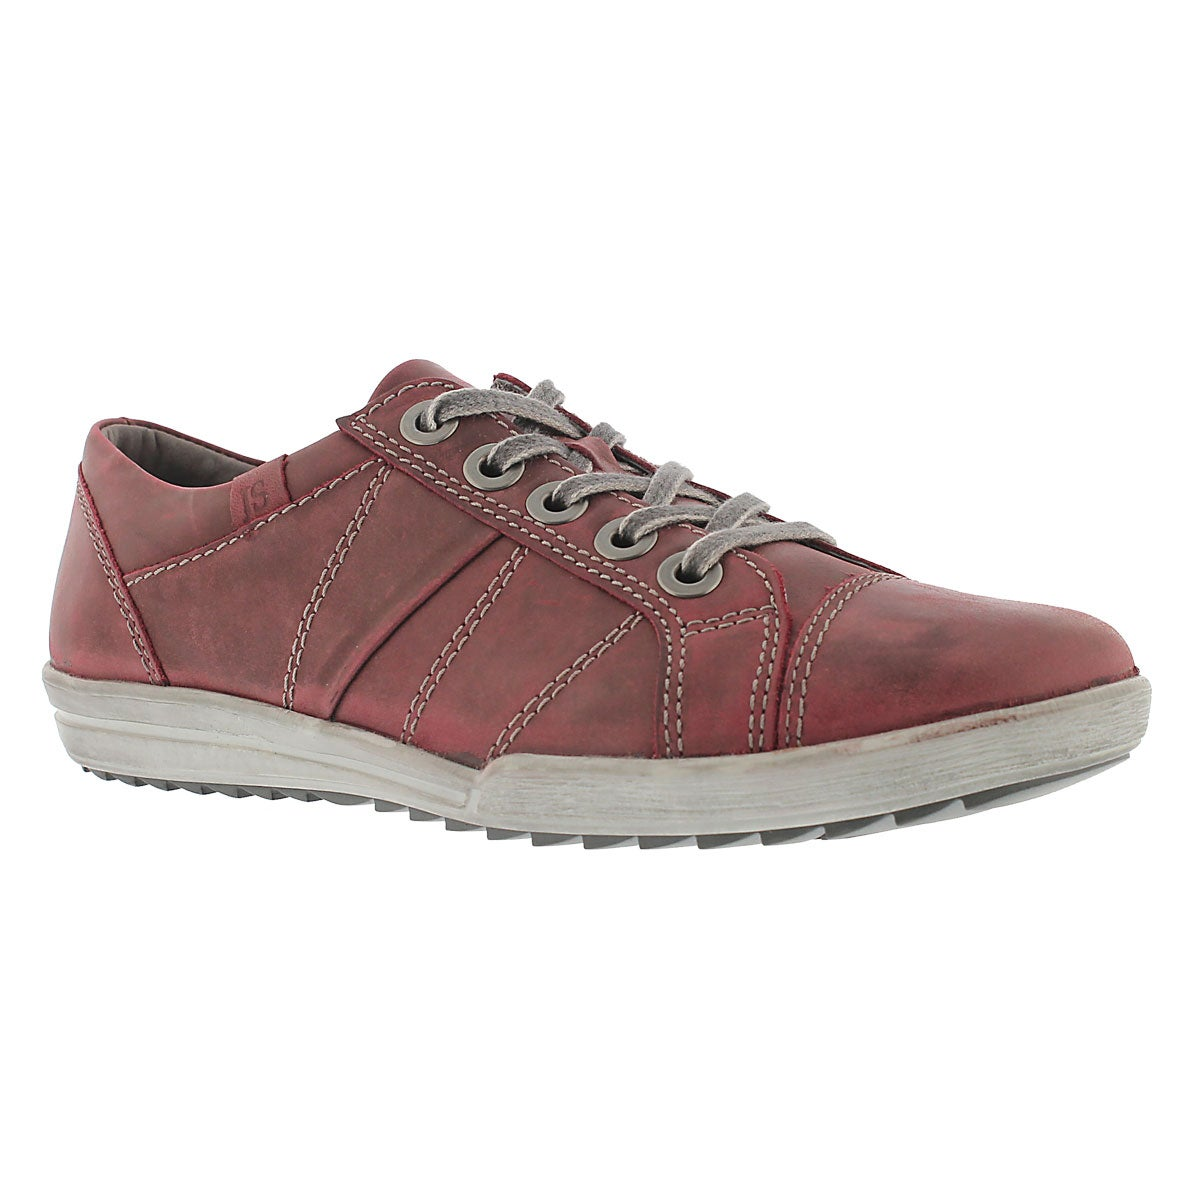 Women's DANY 05 wine leather oxford sneakers